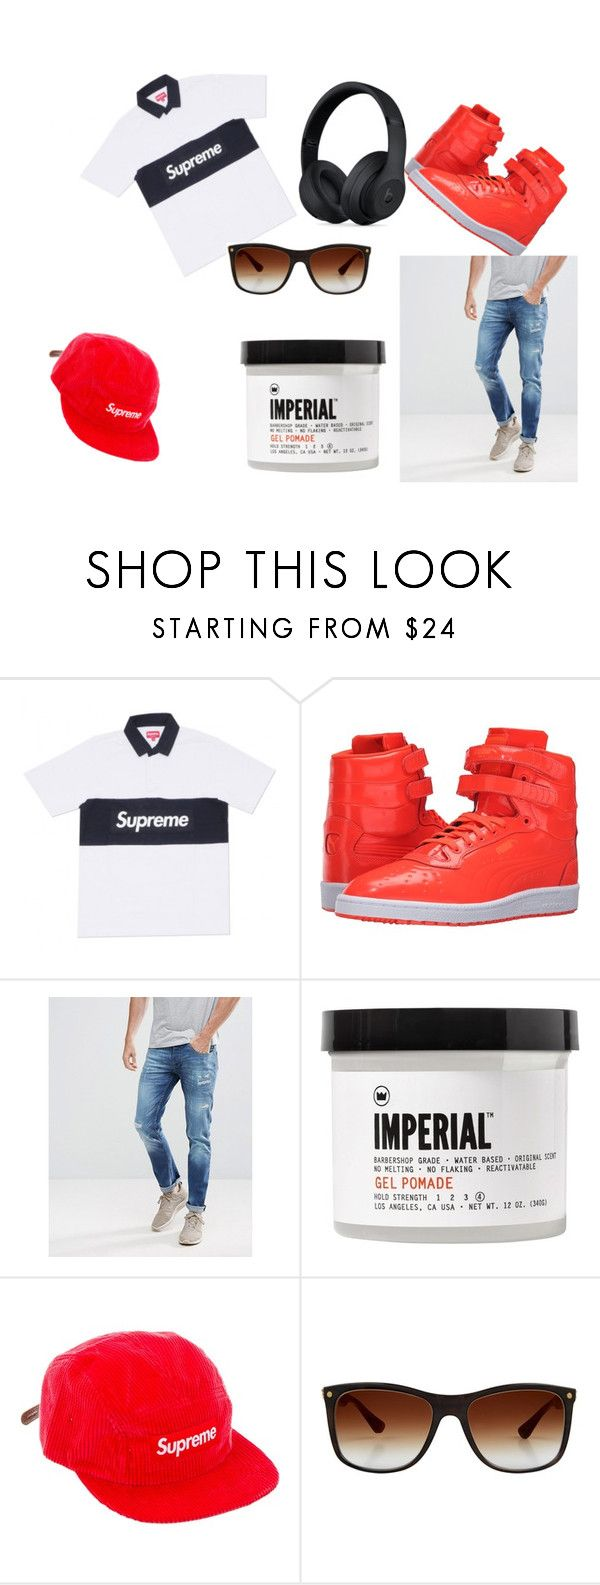 """""""Eliah"""" by unicornbrianna16000 ❤ liked on Polyvore featuring Puma, Voi Jeans, Imperial Barber Products, Supreme, Stefano Ricci, Beats by Dr. Dre, men's fashion and menswear"""